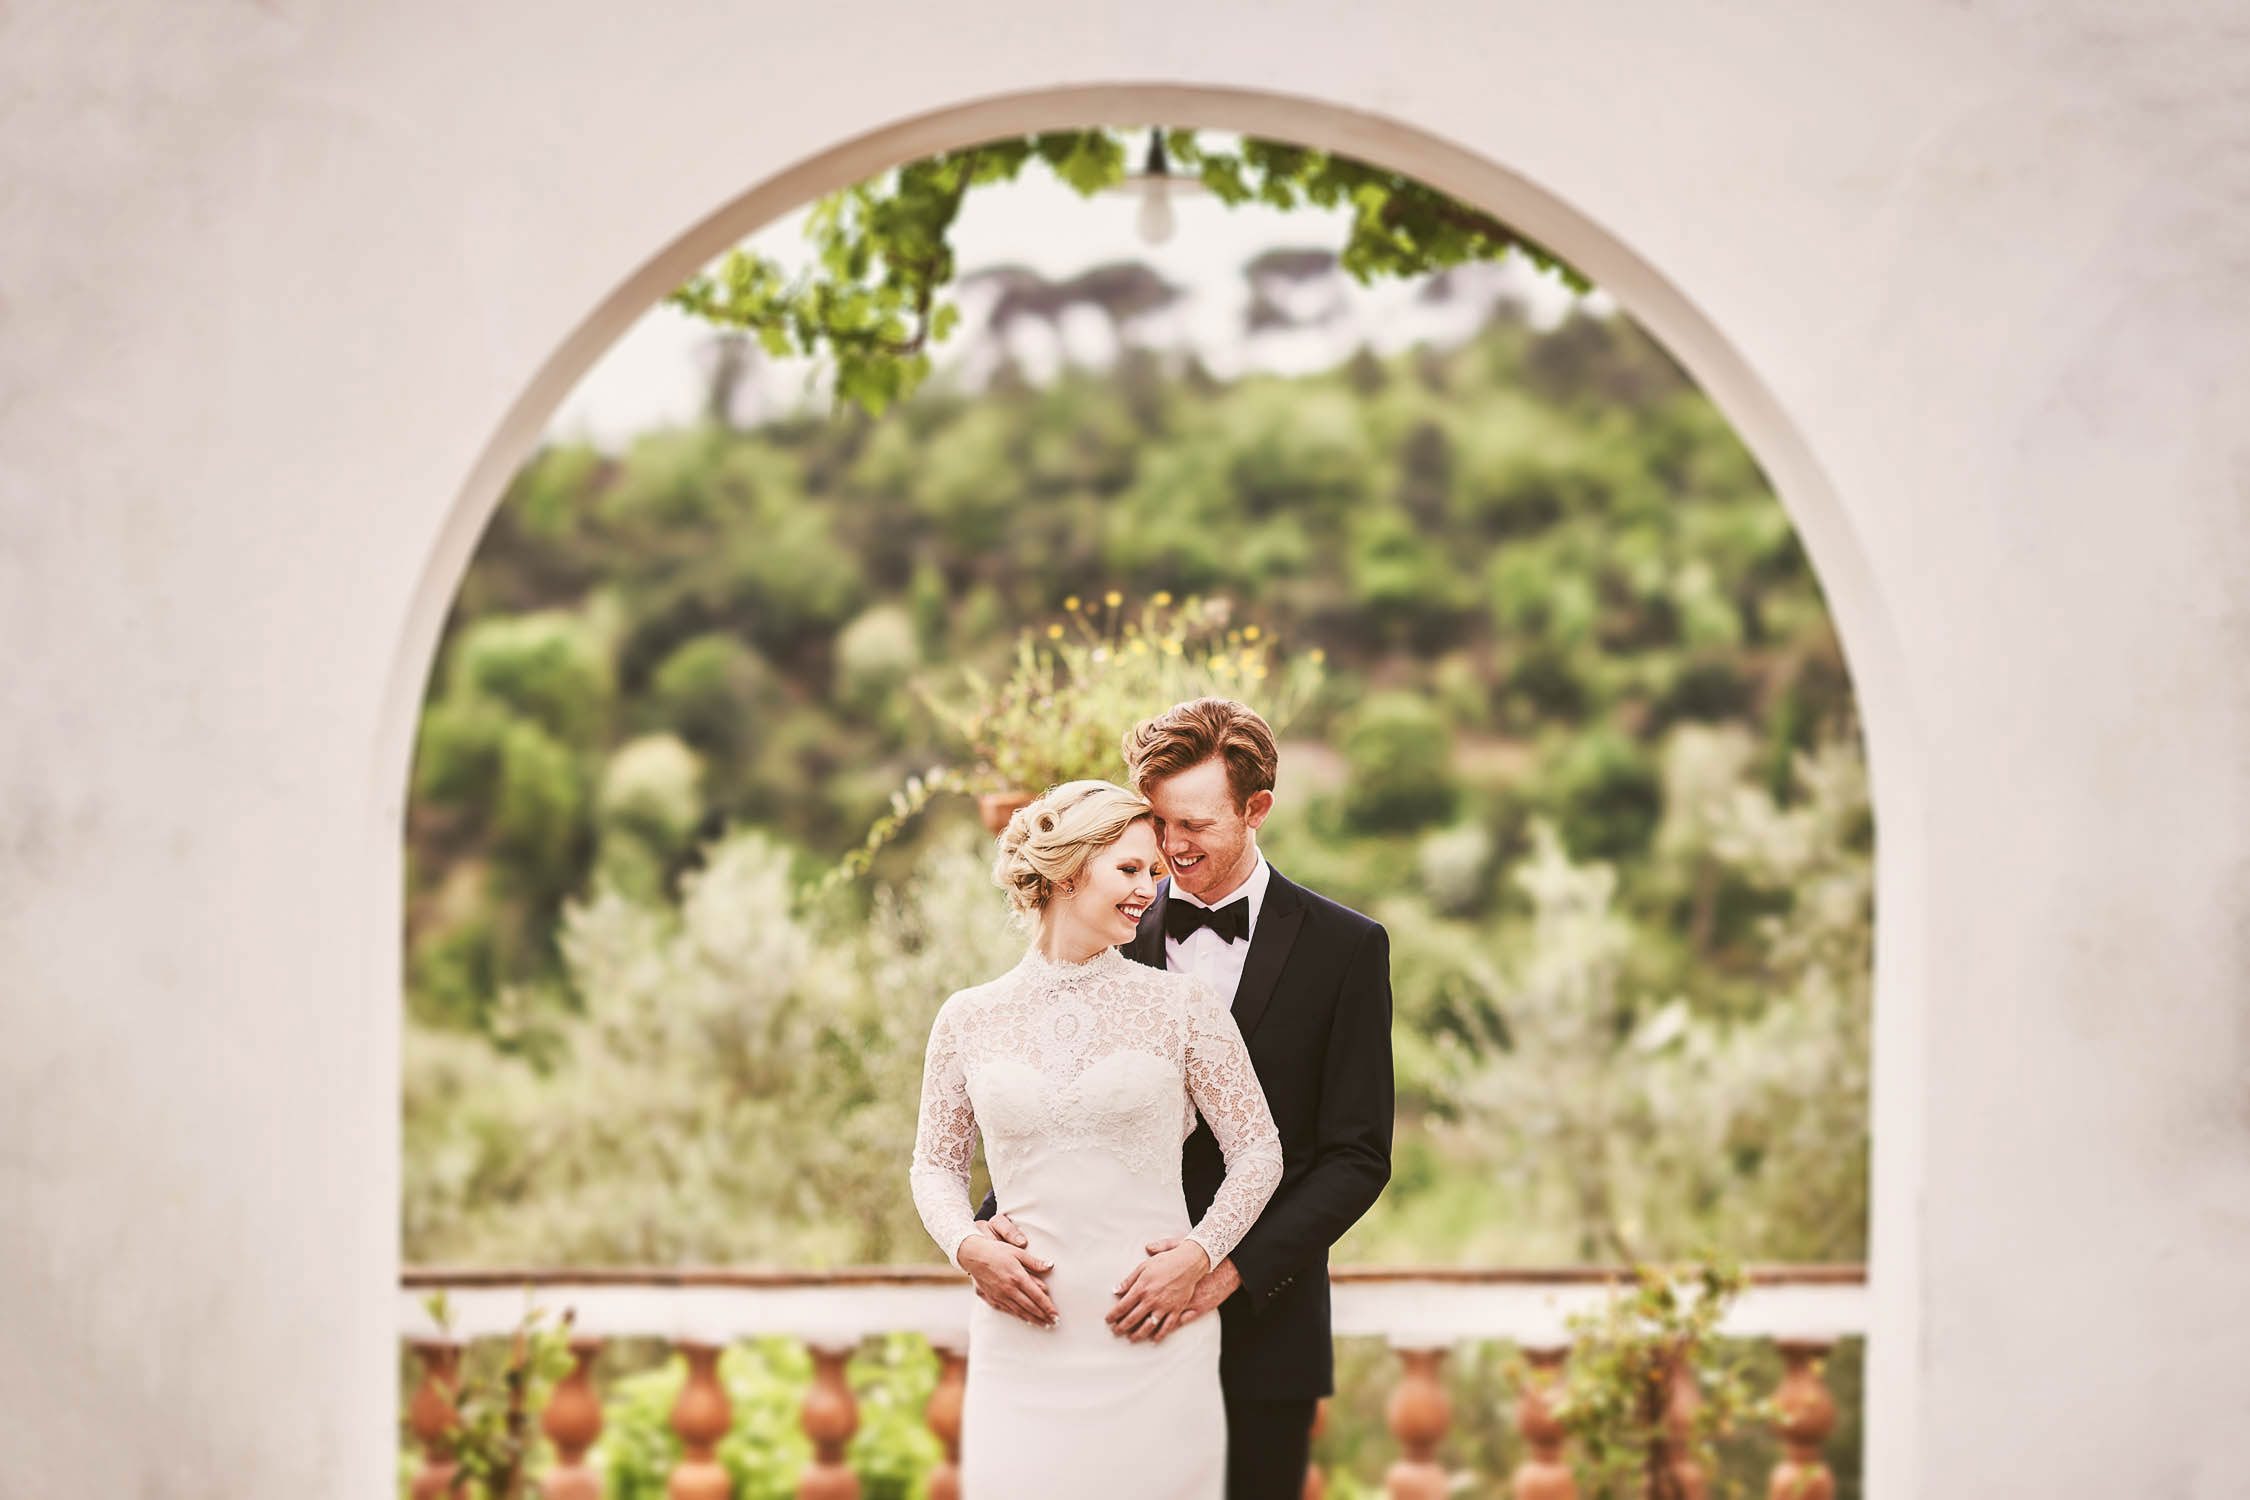 Bride and groom share the love at wedding venue Villa Torricella into Florence countryside